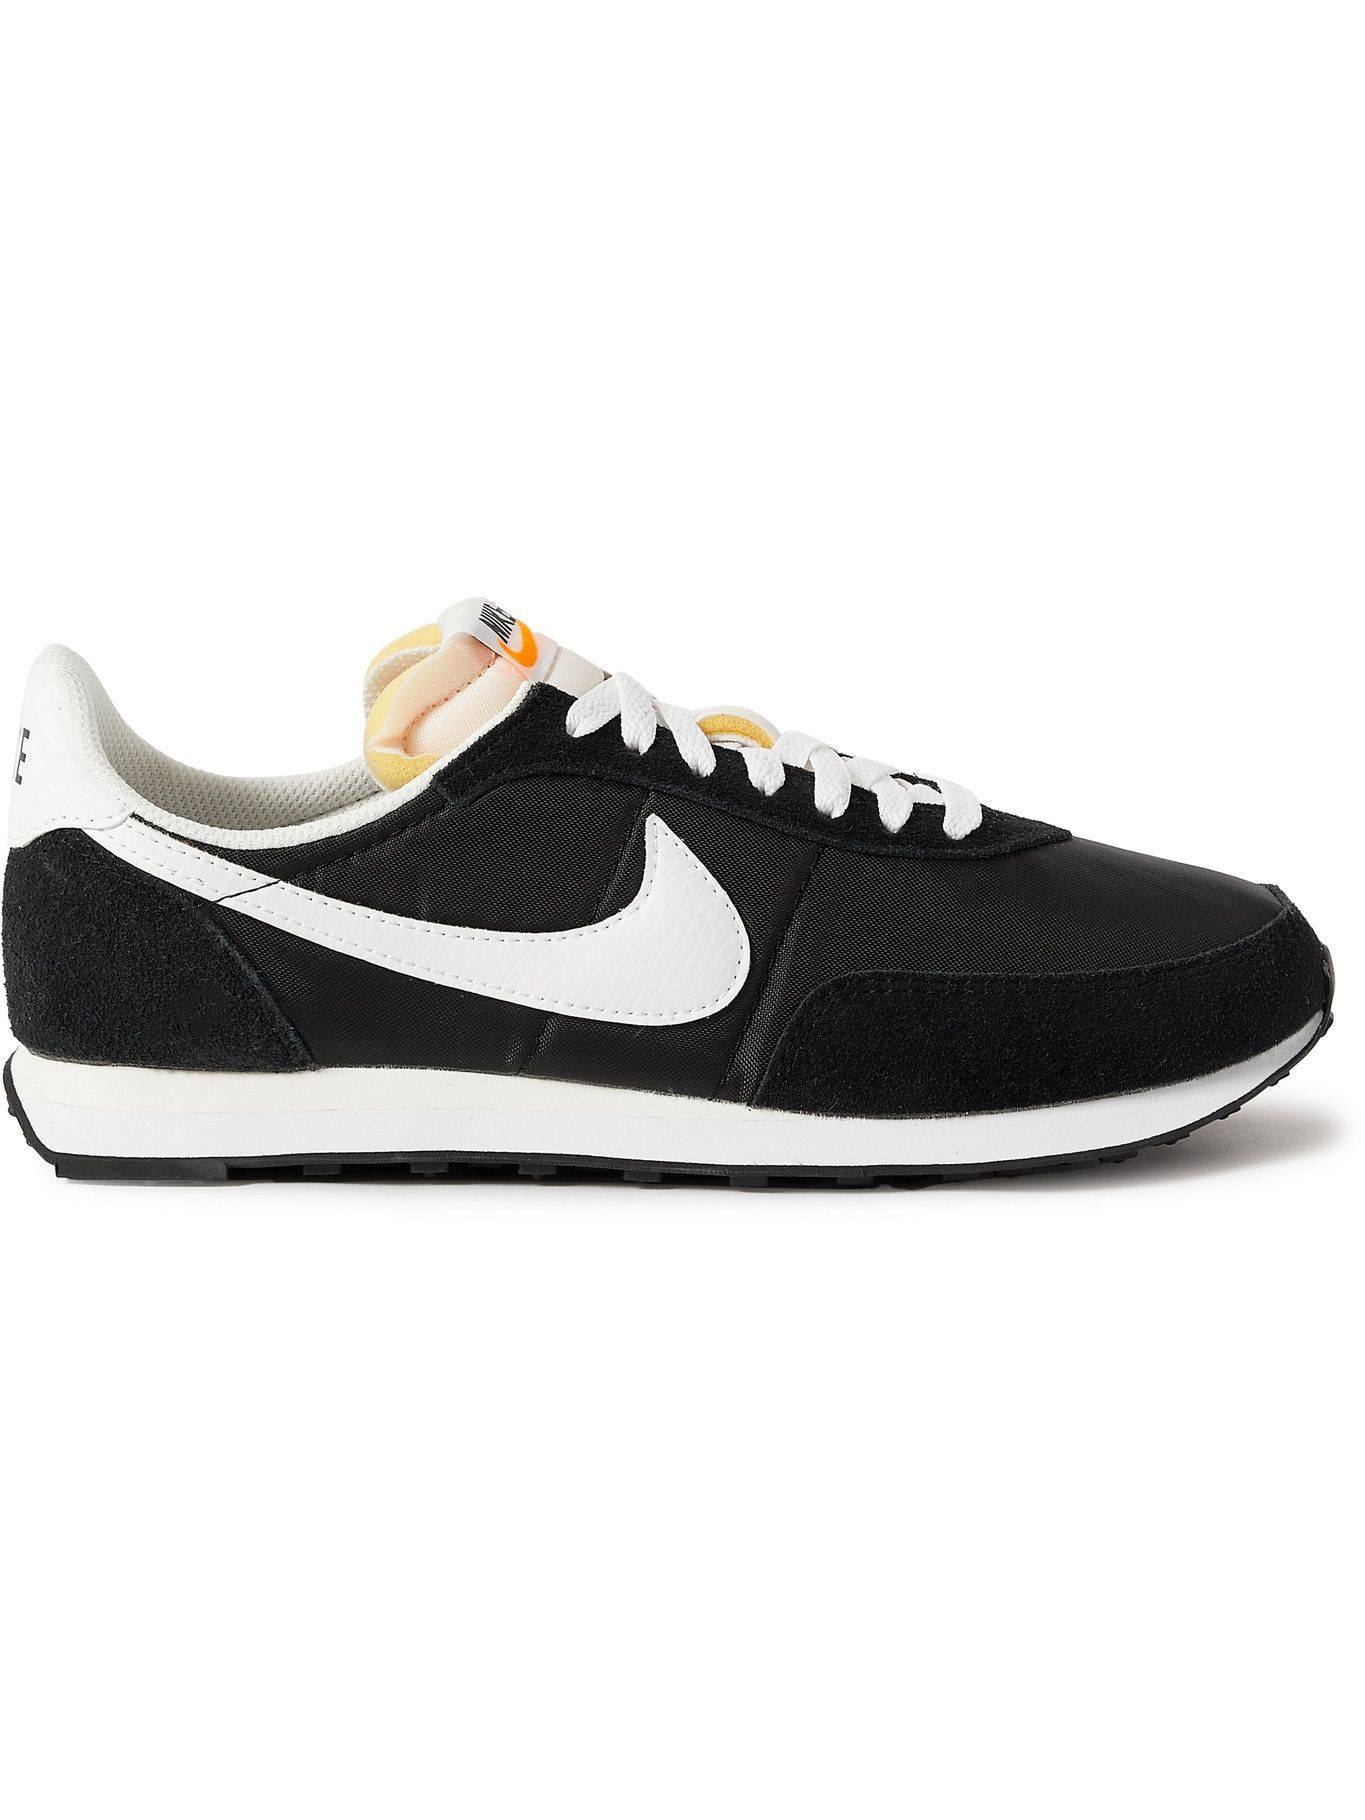 Photo: Nike - Waffle 2 SP Leather and Suede-Trimmed Nylon Sneakers - Black